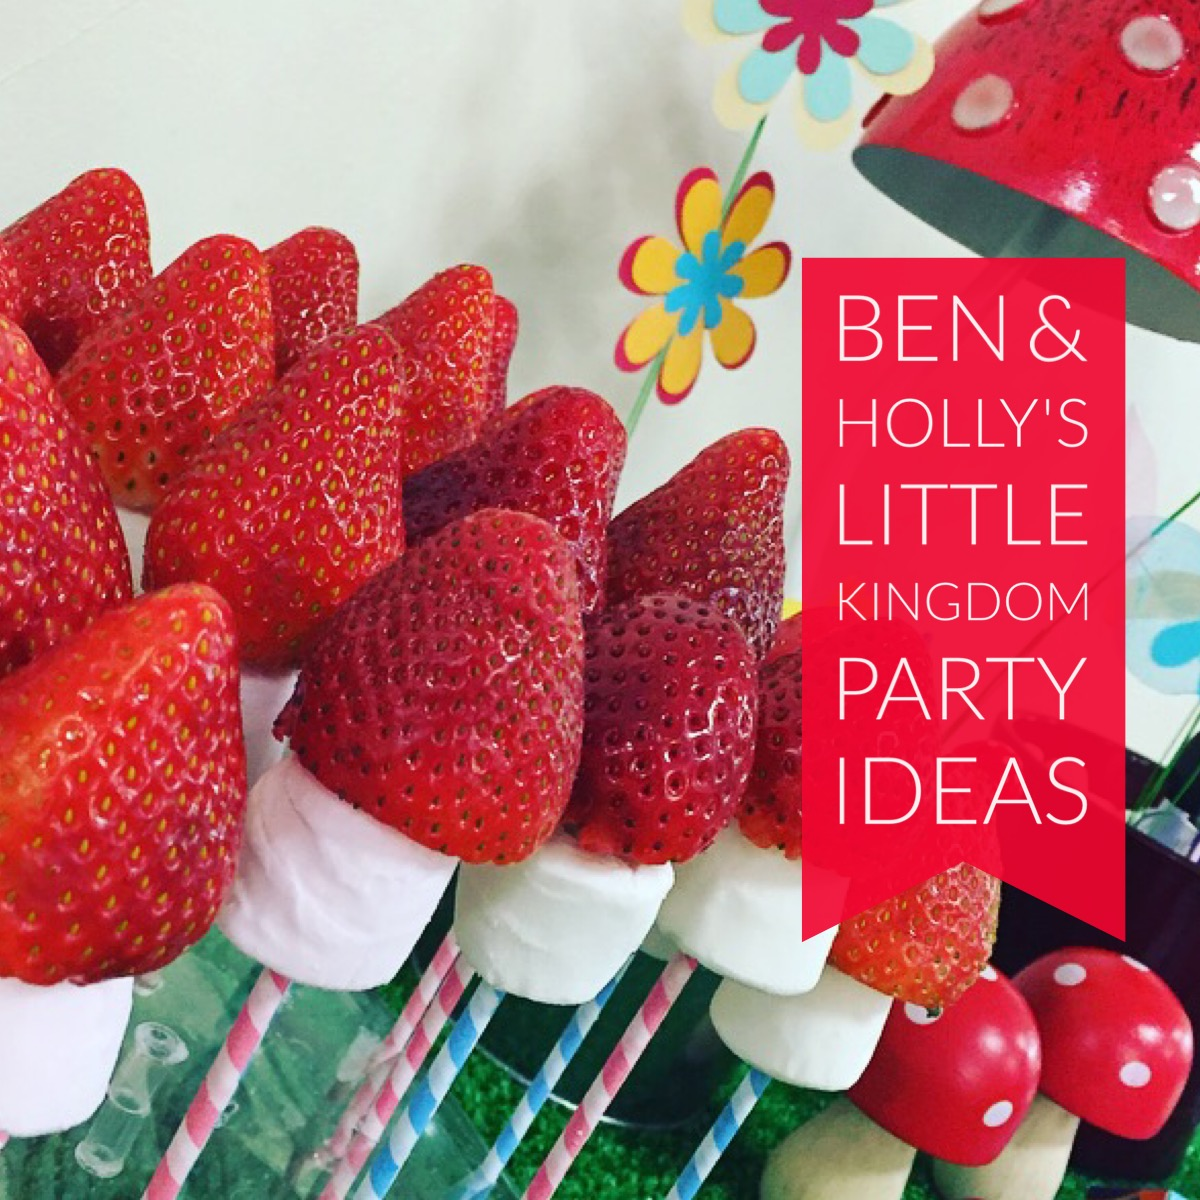 Ben Hollys Little Kingdom Party Ideas Dear Mummy Blog